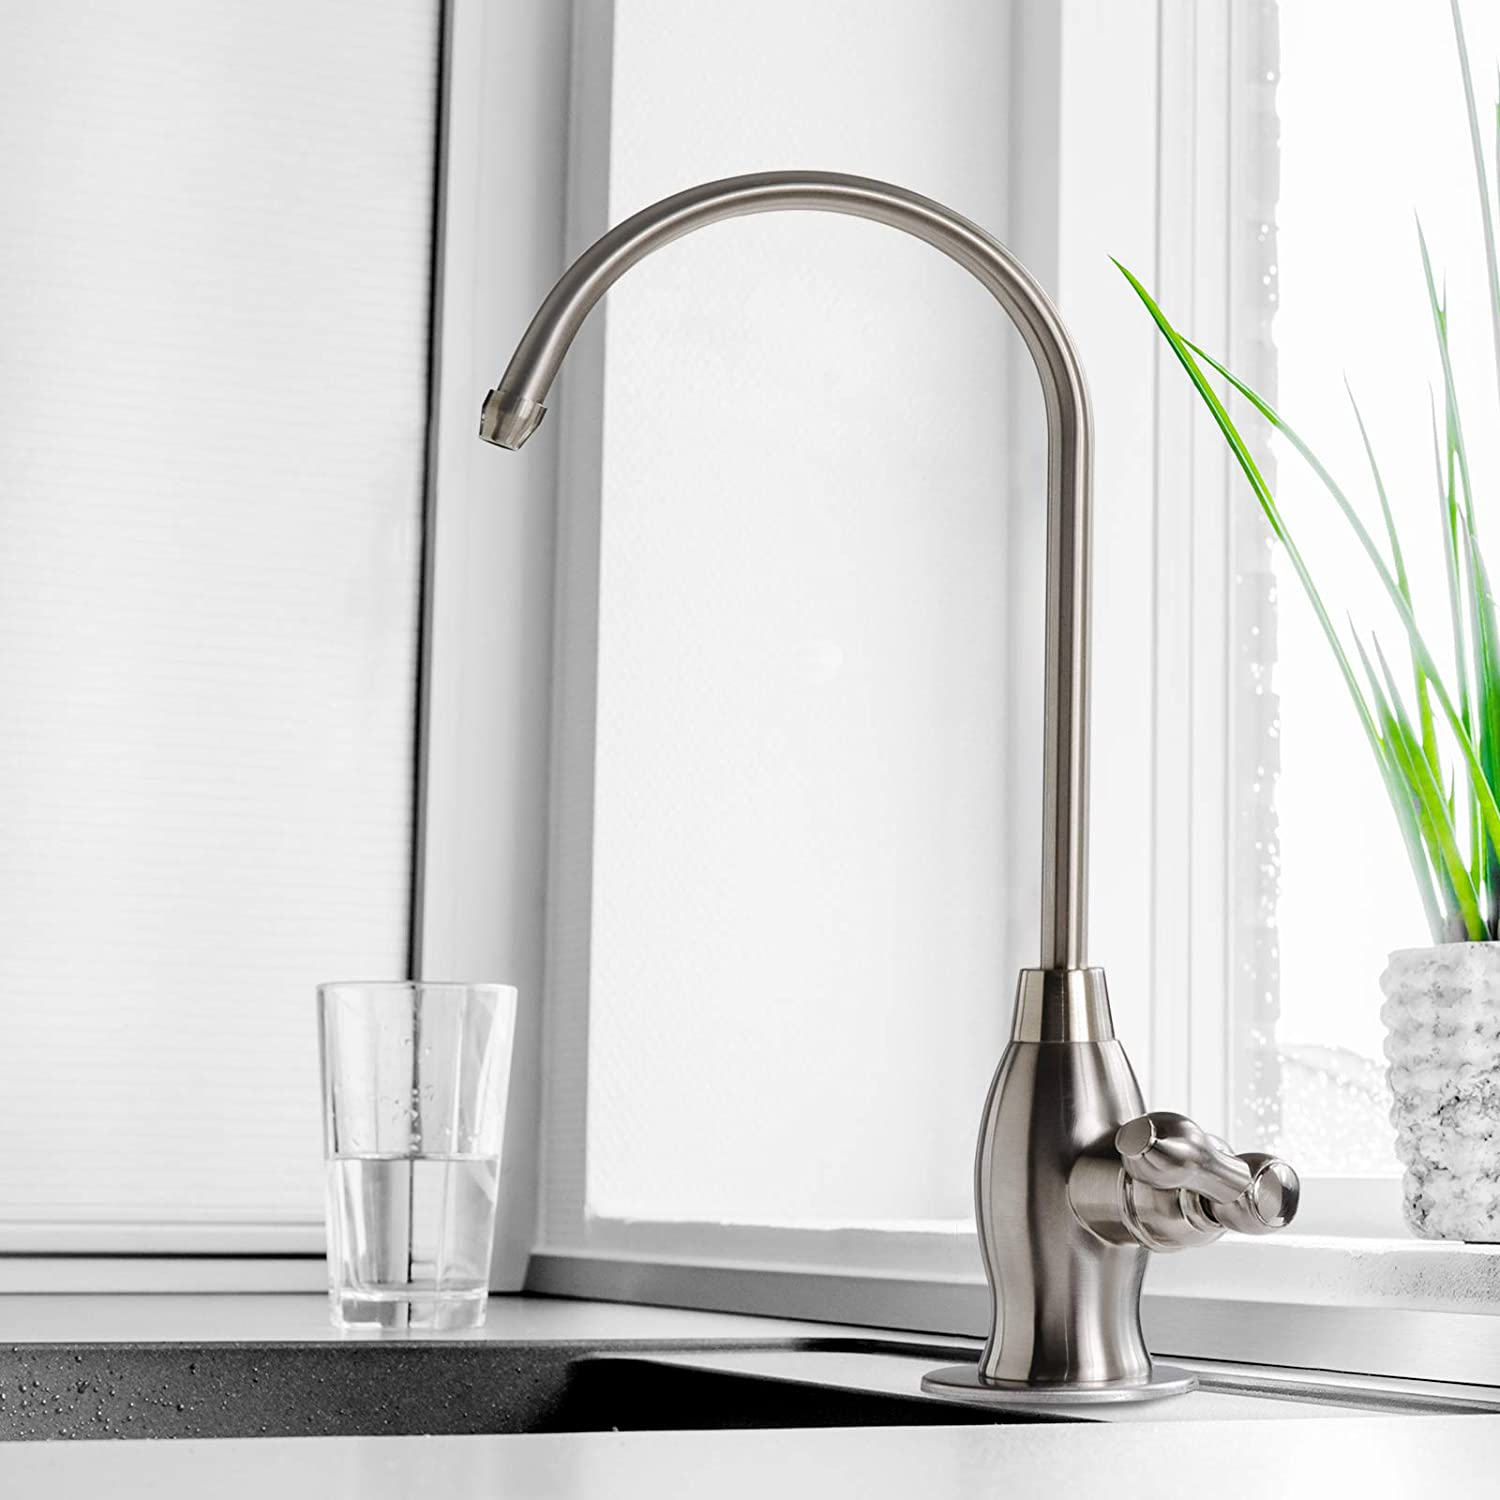 Contemporary Style iSpring GK1-BN Heavy Duty High Spout Kitchen Bar Sink Drinking Water Faucet Brushed Nickel iSpring Water Systems